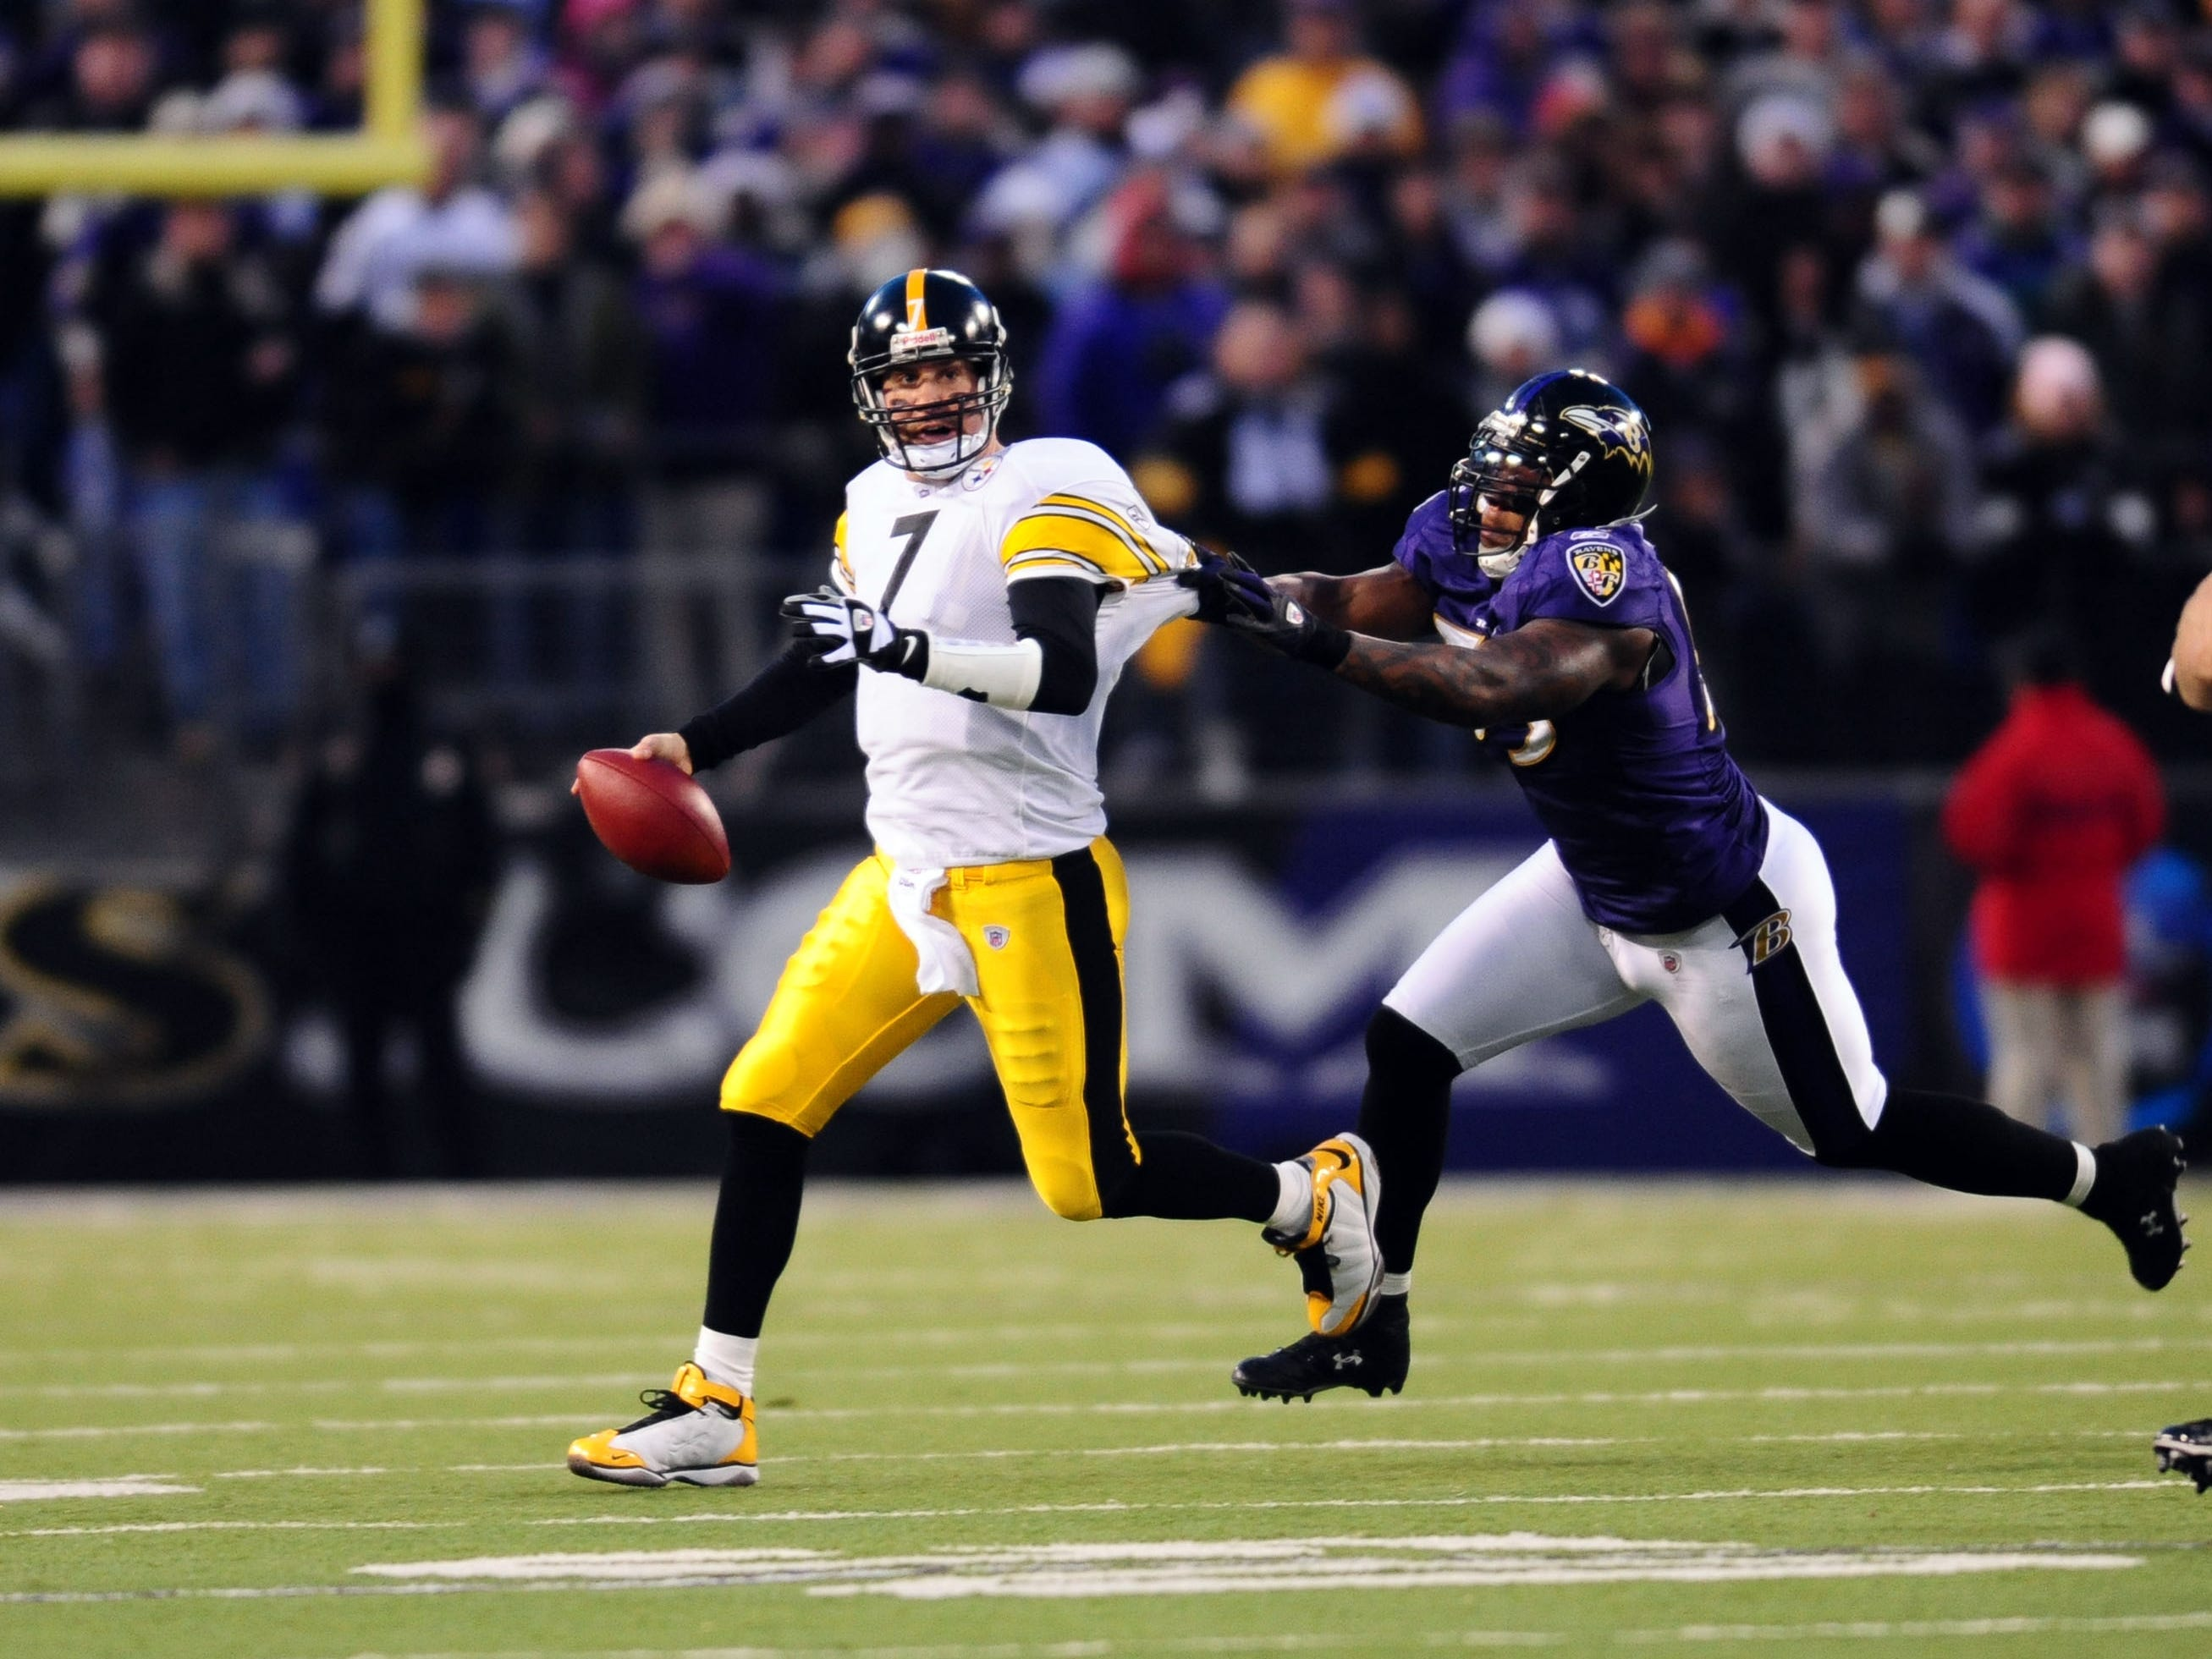 Baltimore, MD, USA; Pittsburgh Steelers quarterback Ben Roethlisberger (7) is chased by Baltimore Ravens linebacker Terrell Suggs (55) in the first quarter at M&T Bank Stadium.